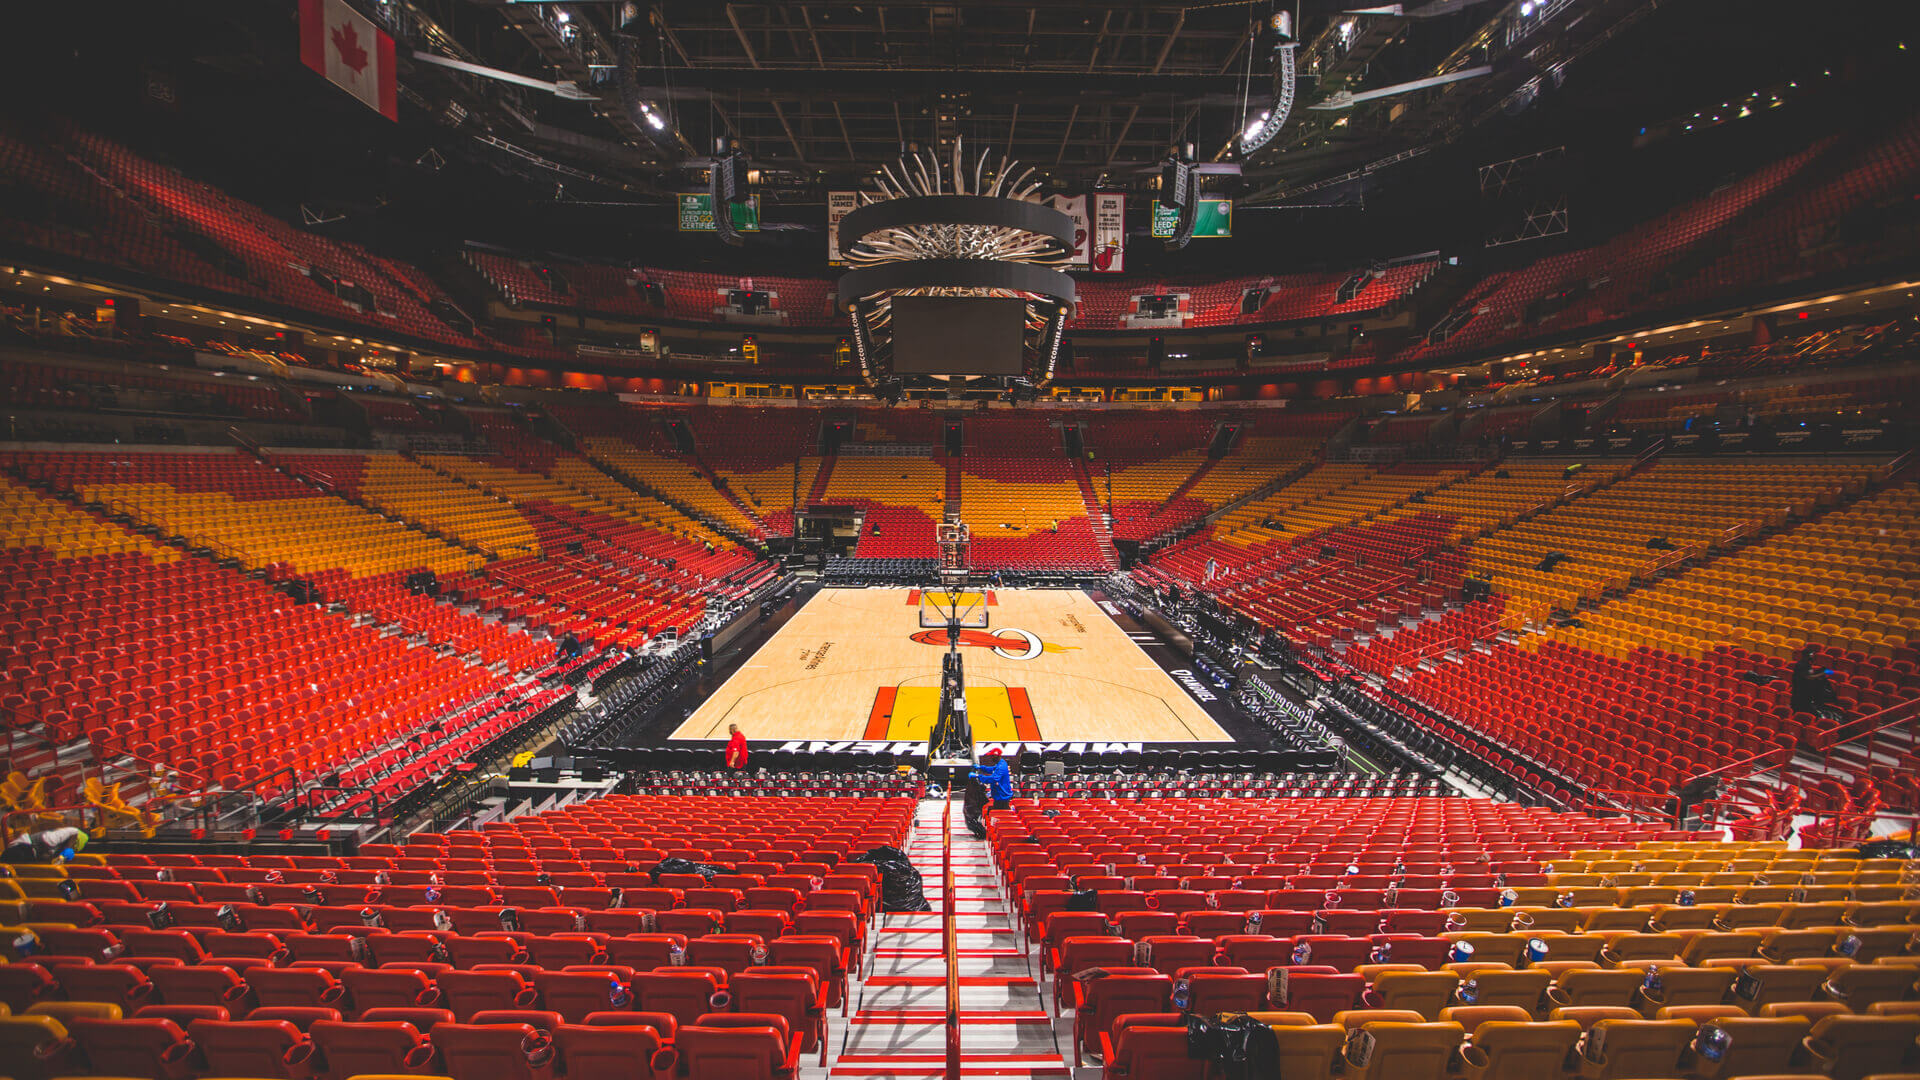 Amiercan Airlines Arena (Miami Heat)